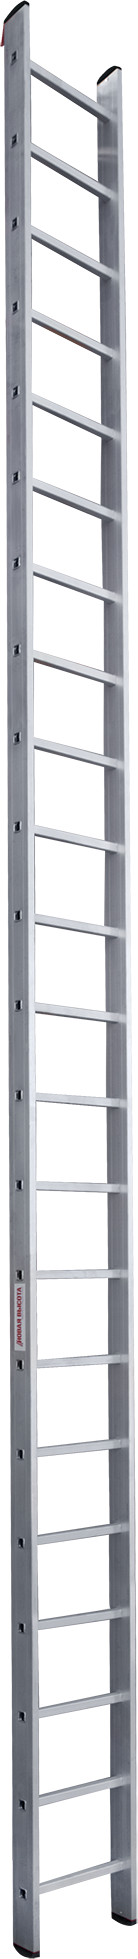 One-section aluminium professional rung ladder NV 3210 sku 3210122